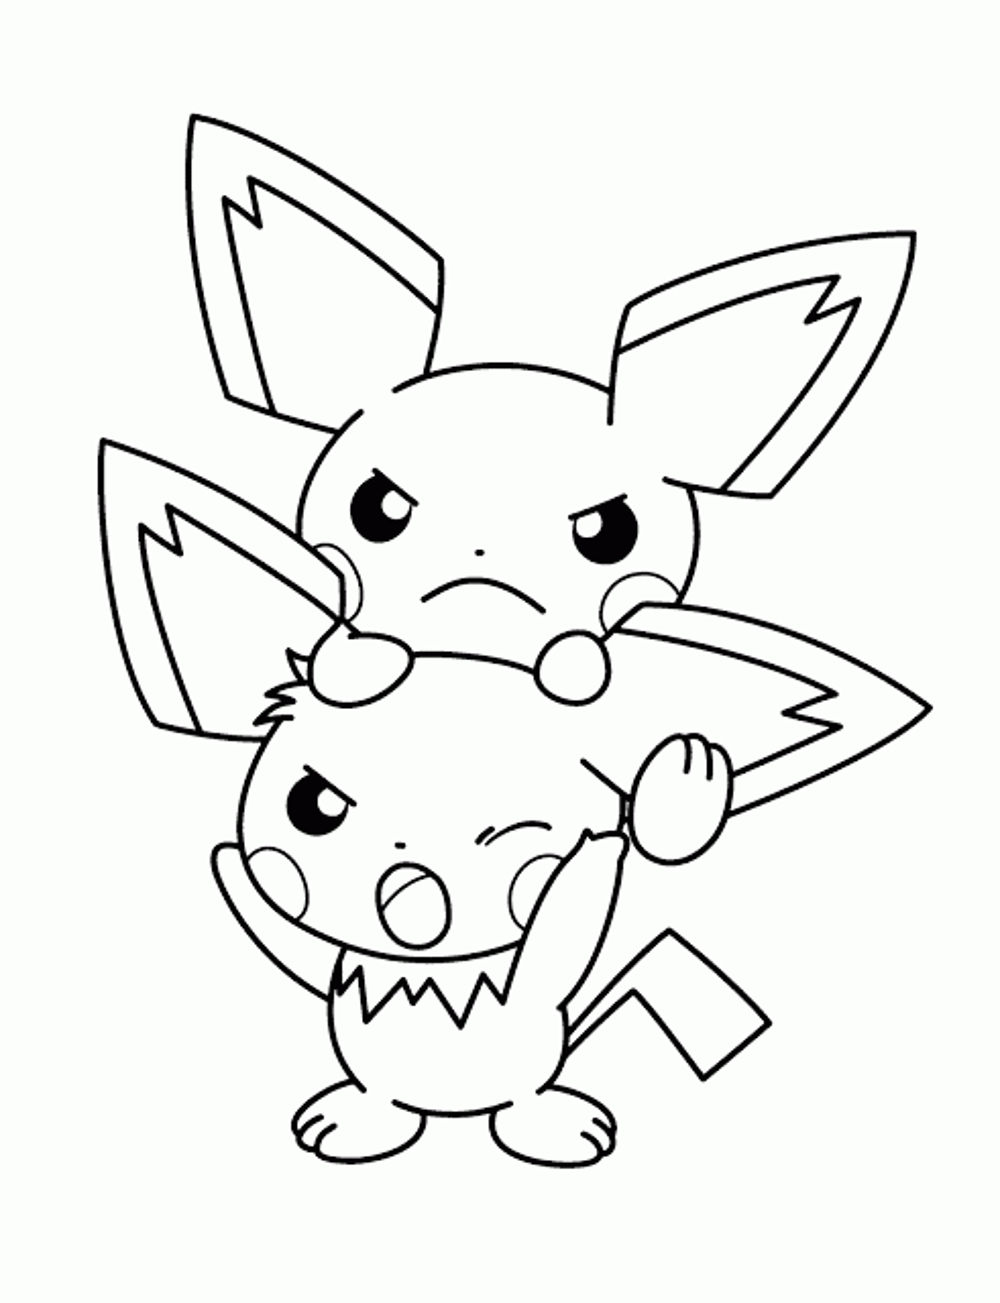 pokemon-coloring-pages-eevee | | BestAppsForKids.com